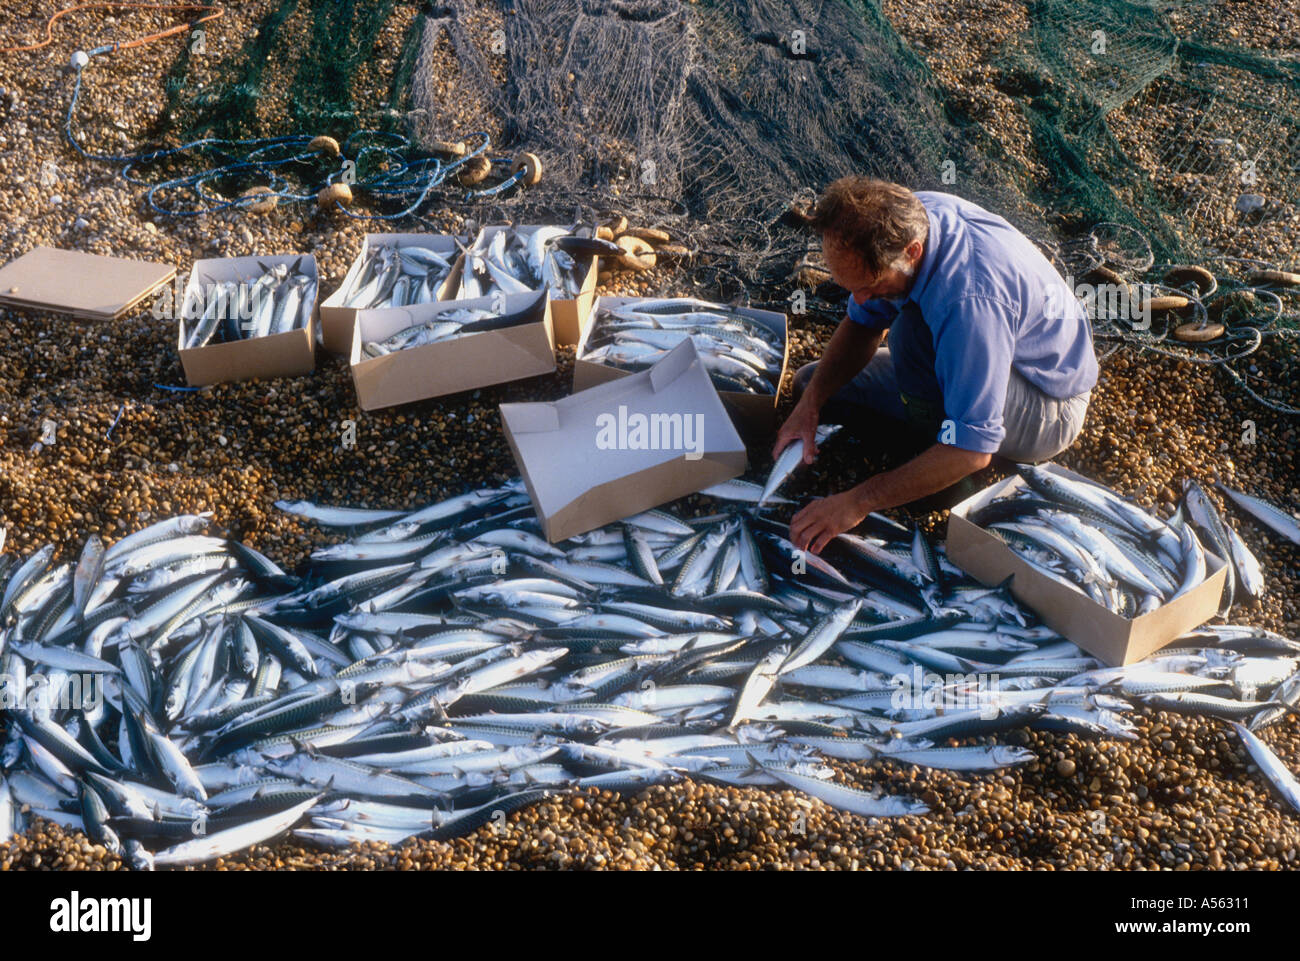 Traditional Seine Net Fishing Catch Of Mackerel From A Lerret Boat At Chesil Beach Near Weymouth Dorset England Uk